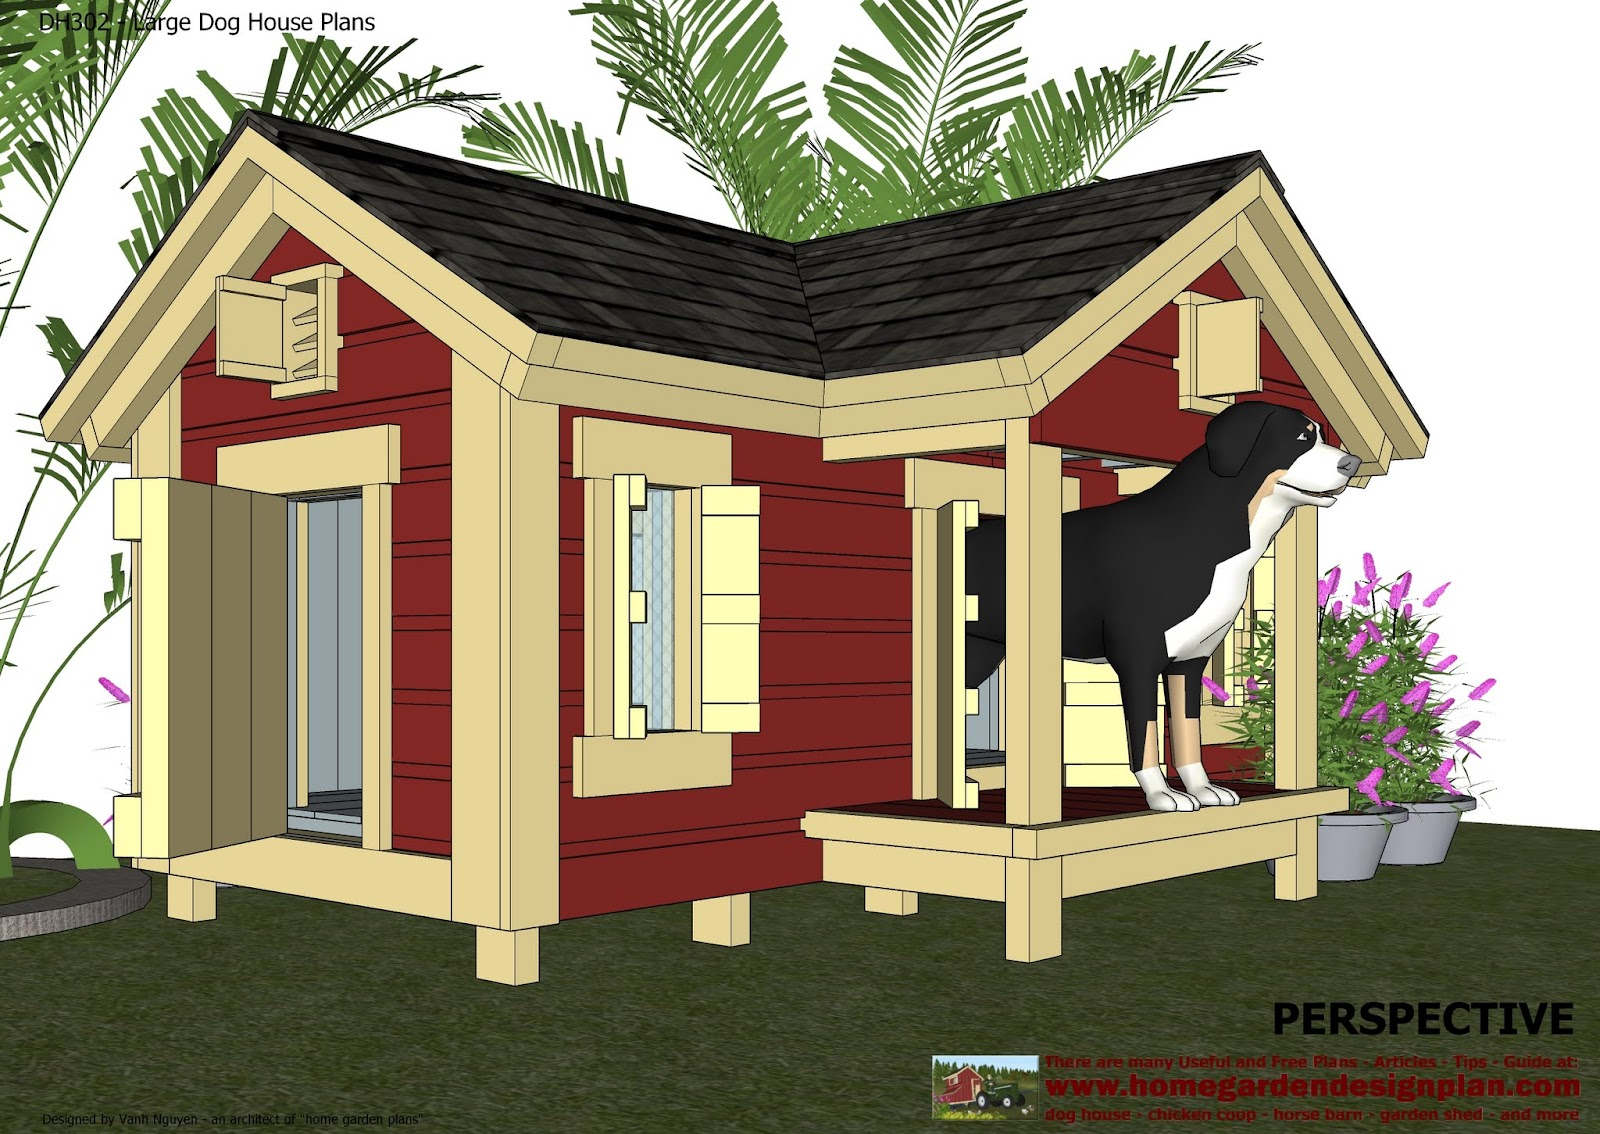 Home garden plans dh302 insulated dog house plans for House design online